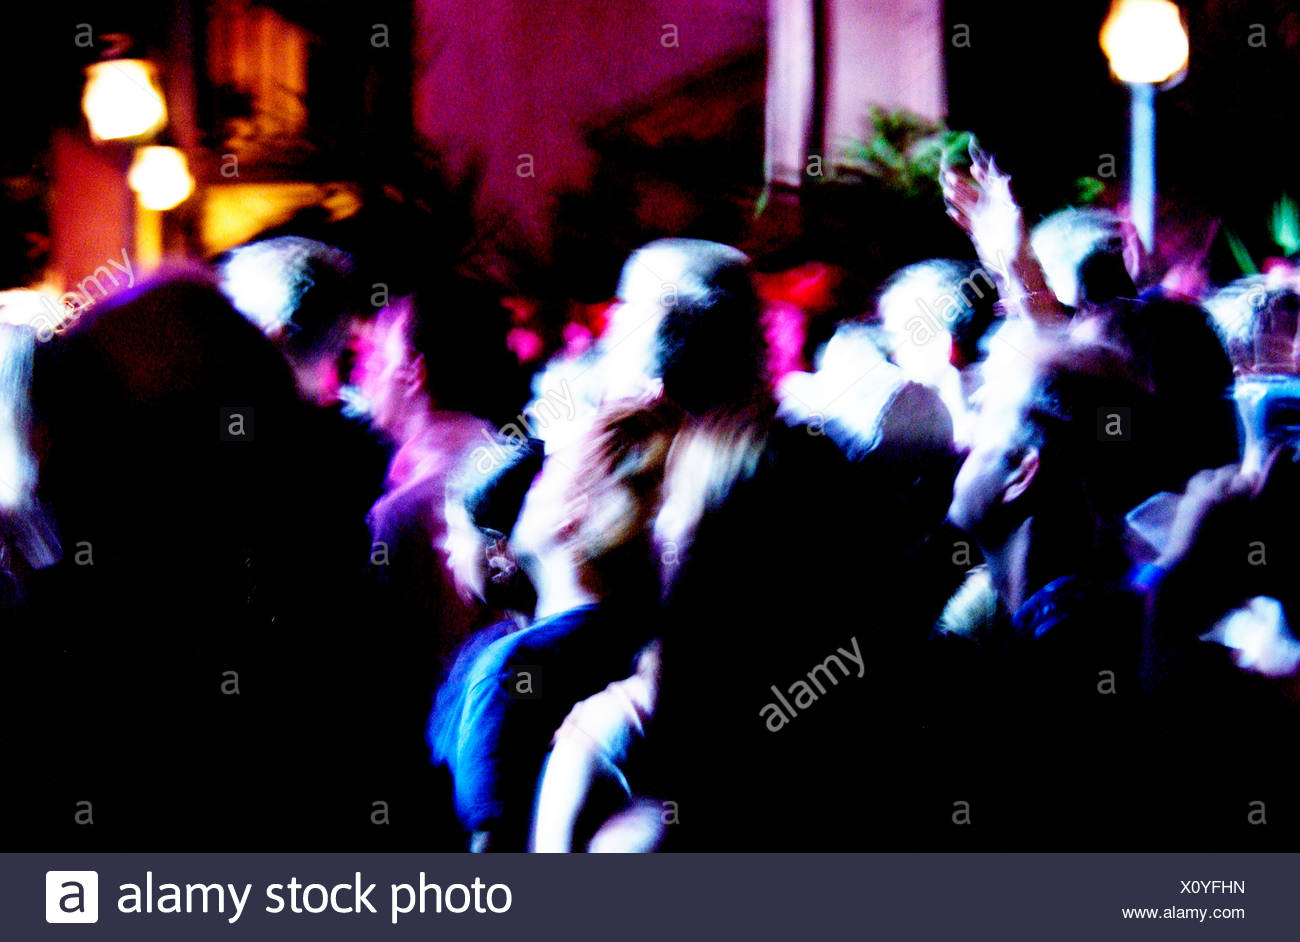 Concert - Stock Image